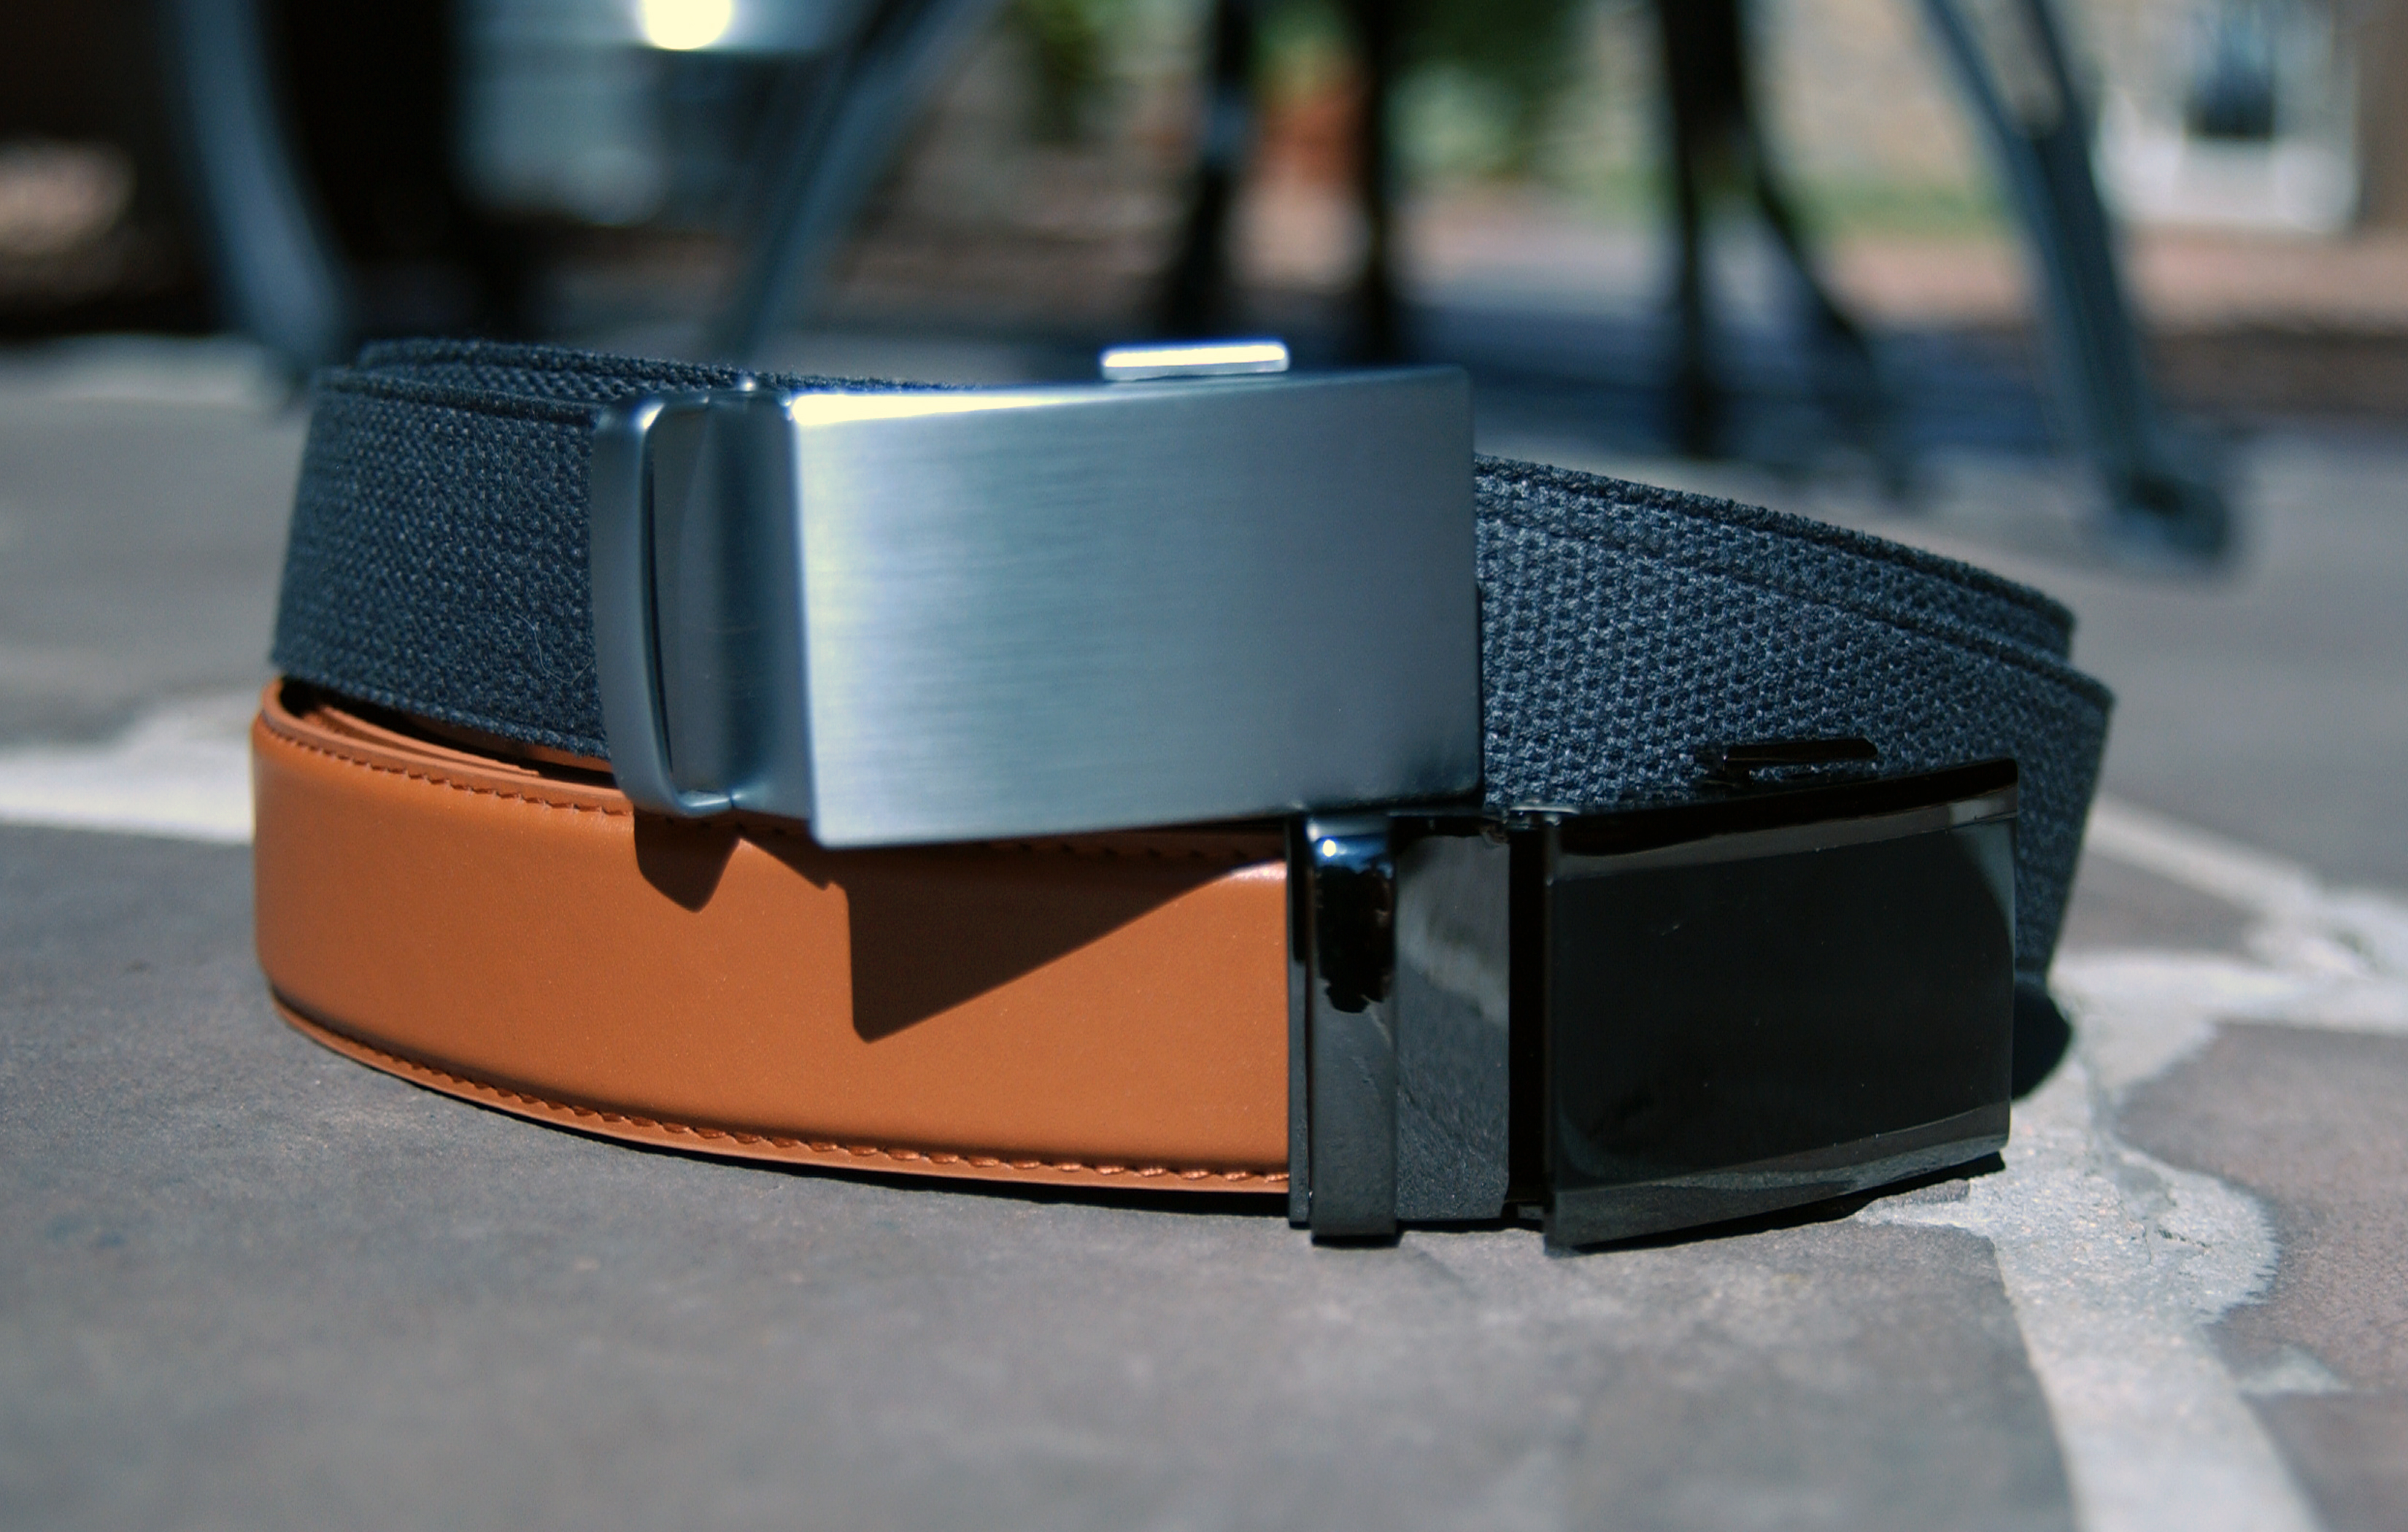 Discussion on this topic: The Best Men's Belts Guide You'll Ever , the-best-mens-belts-guide-youll-ever/